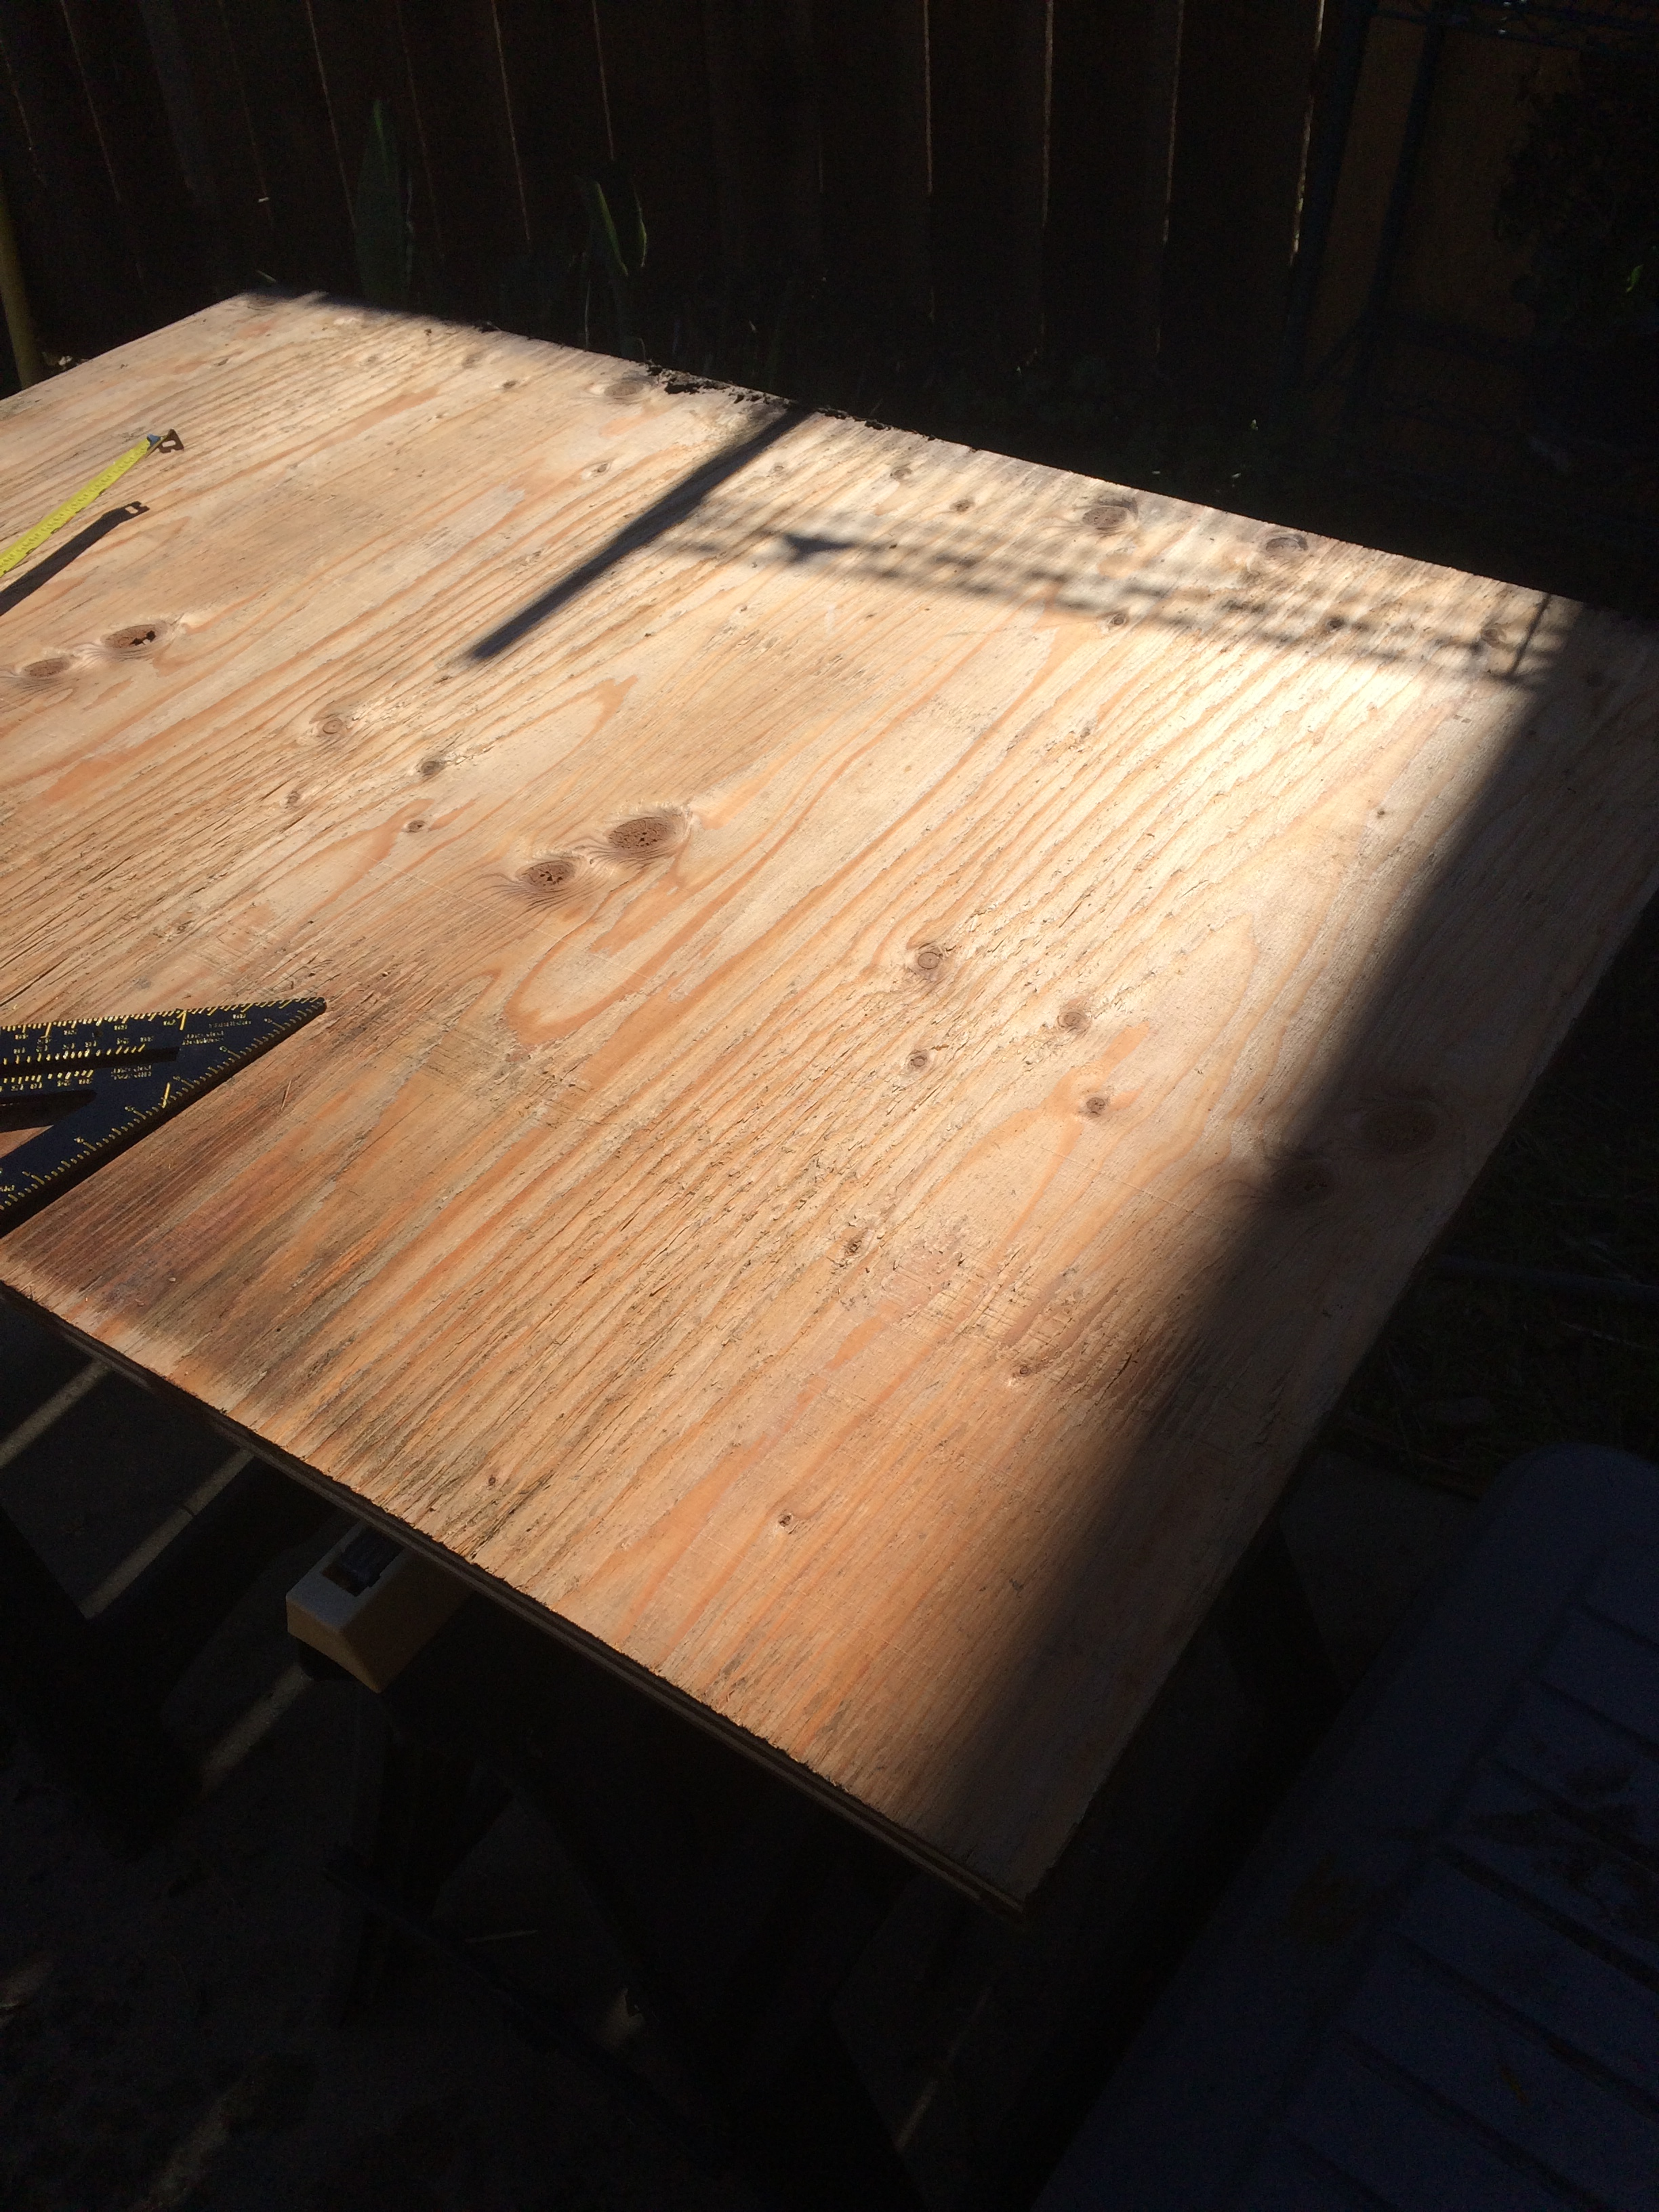 laying out the plywood cuts